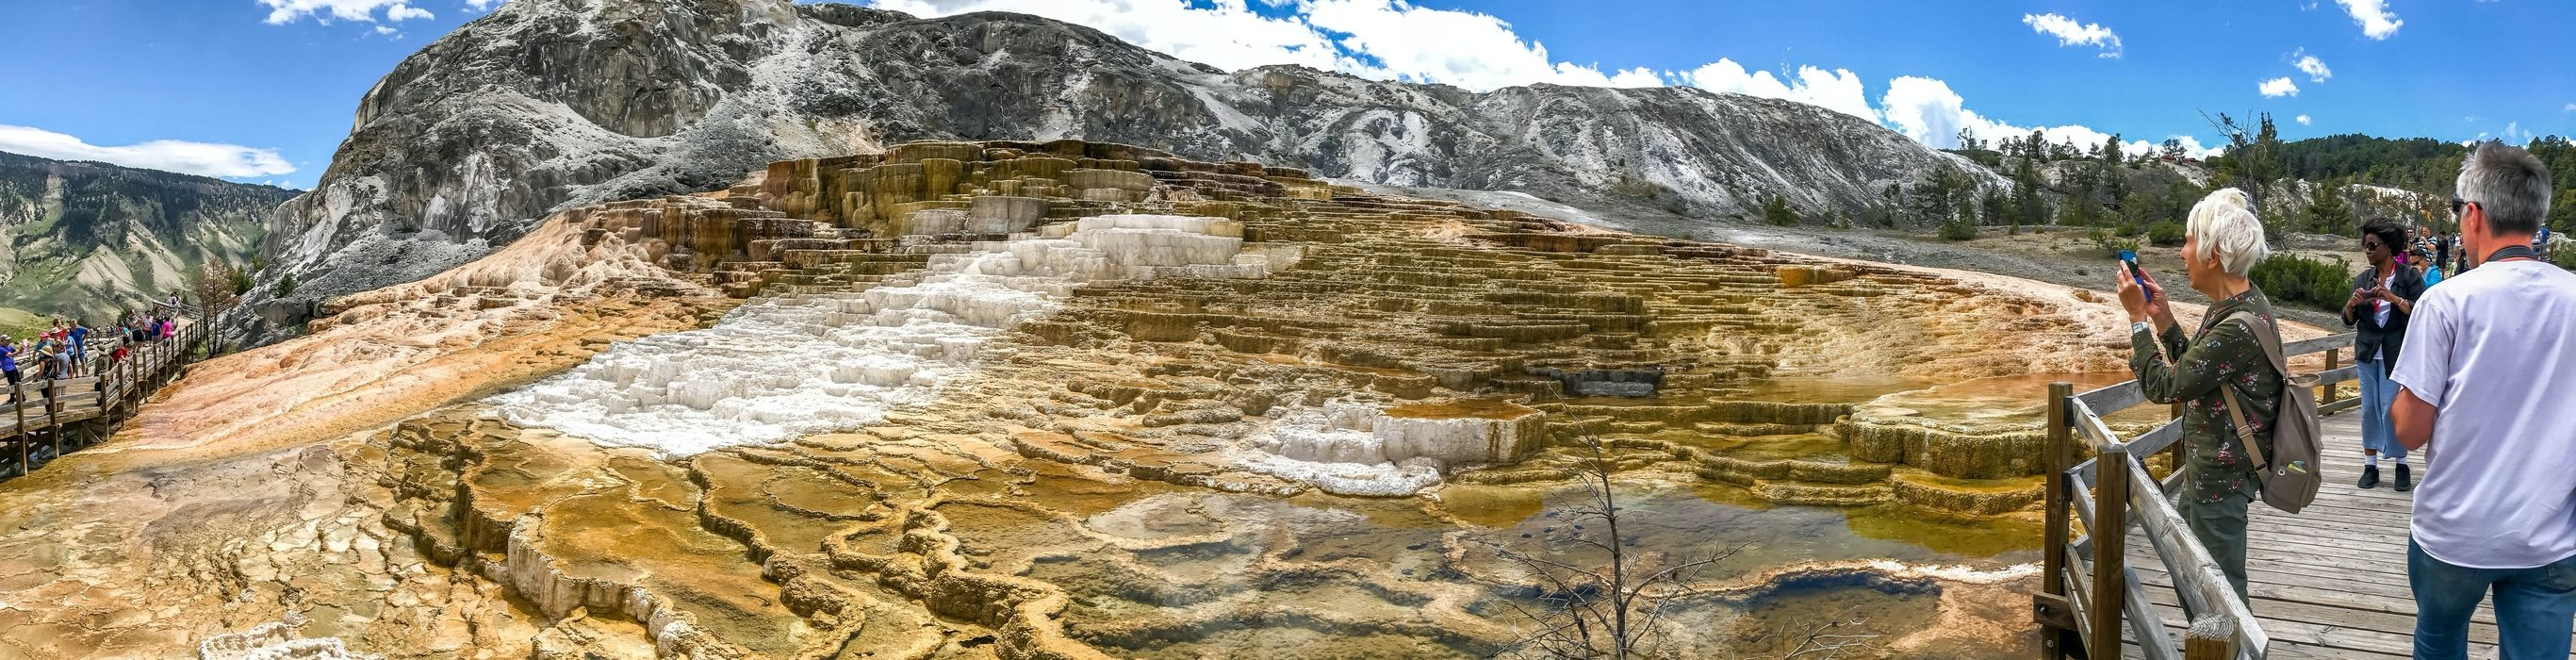 Mammoth Hot Springs w Parku Yellowstone